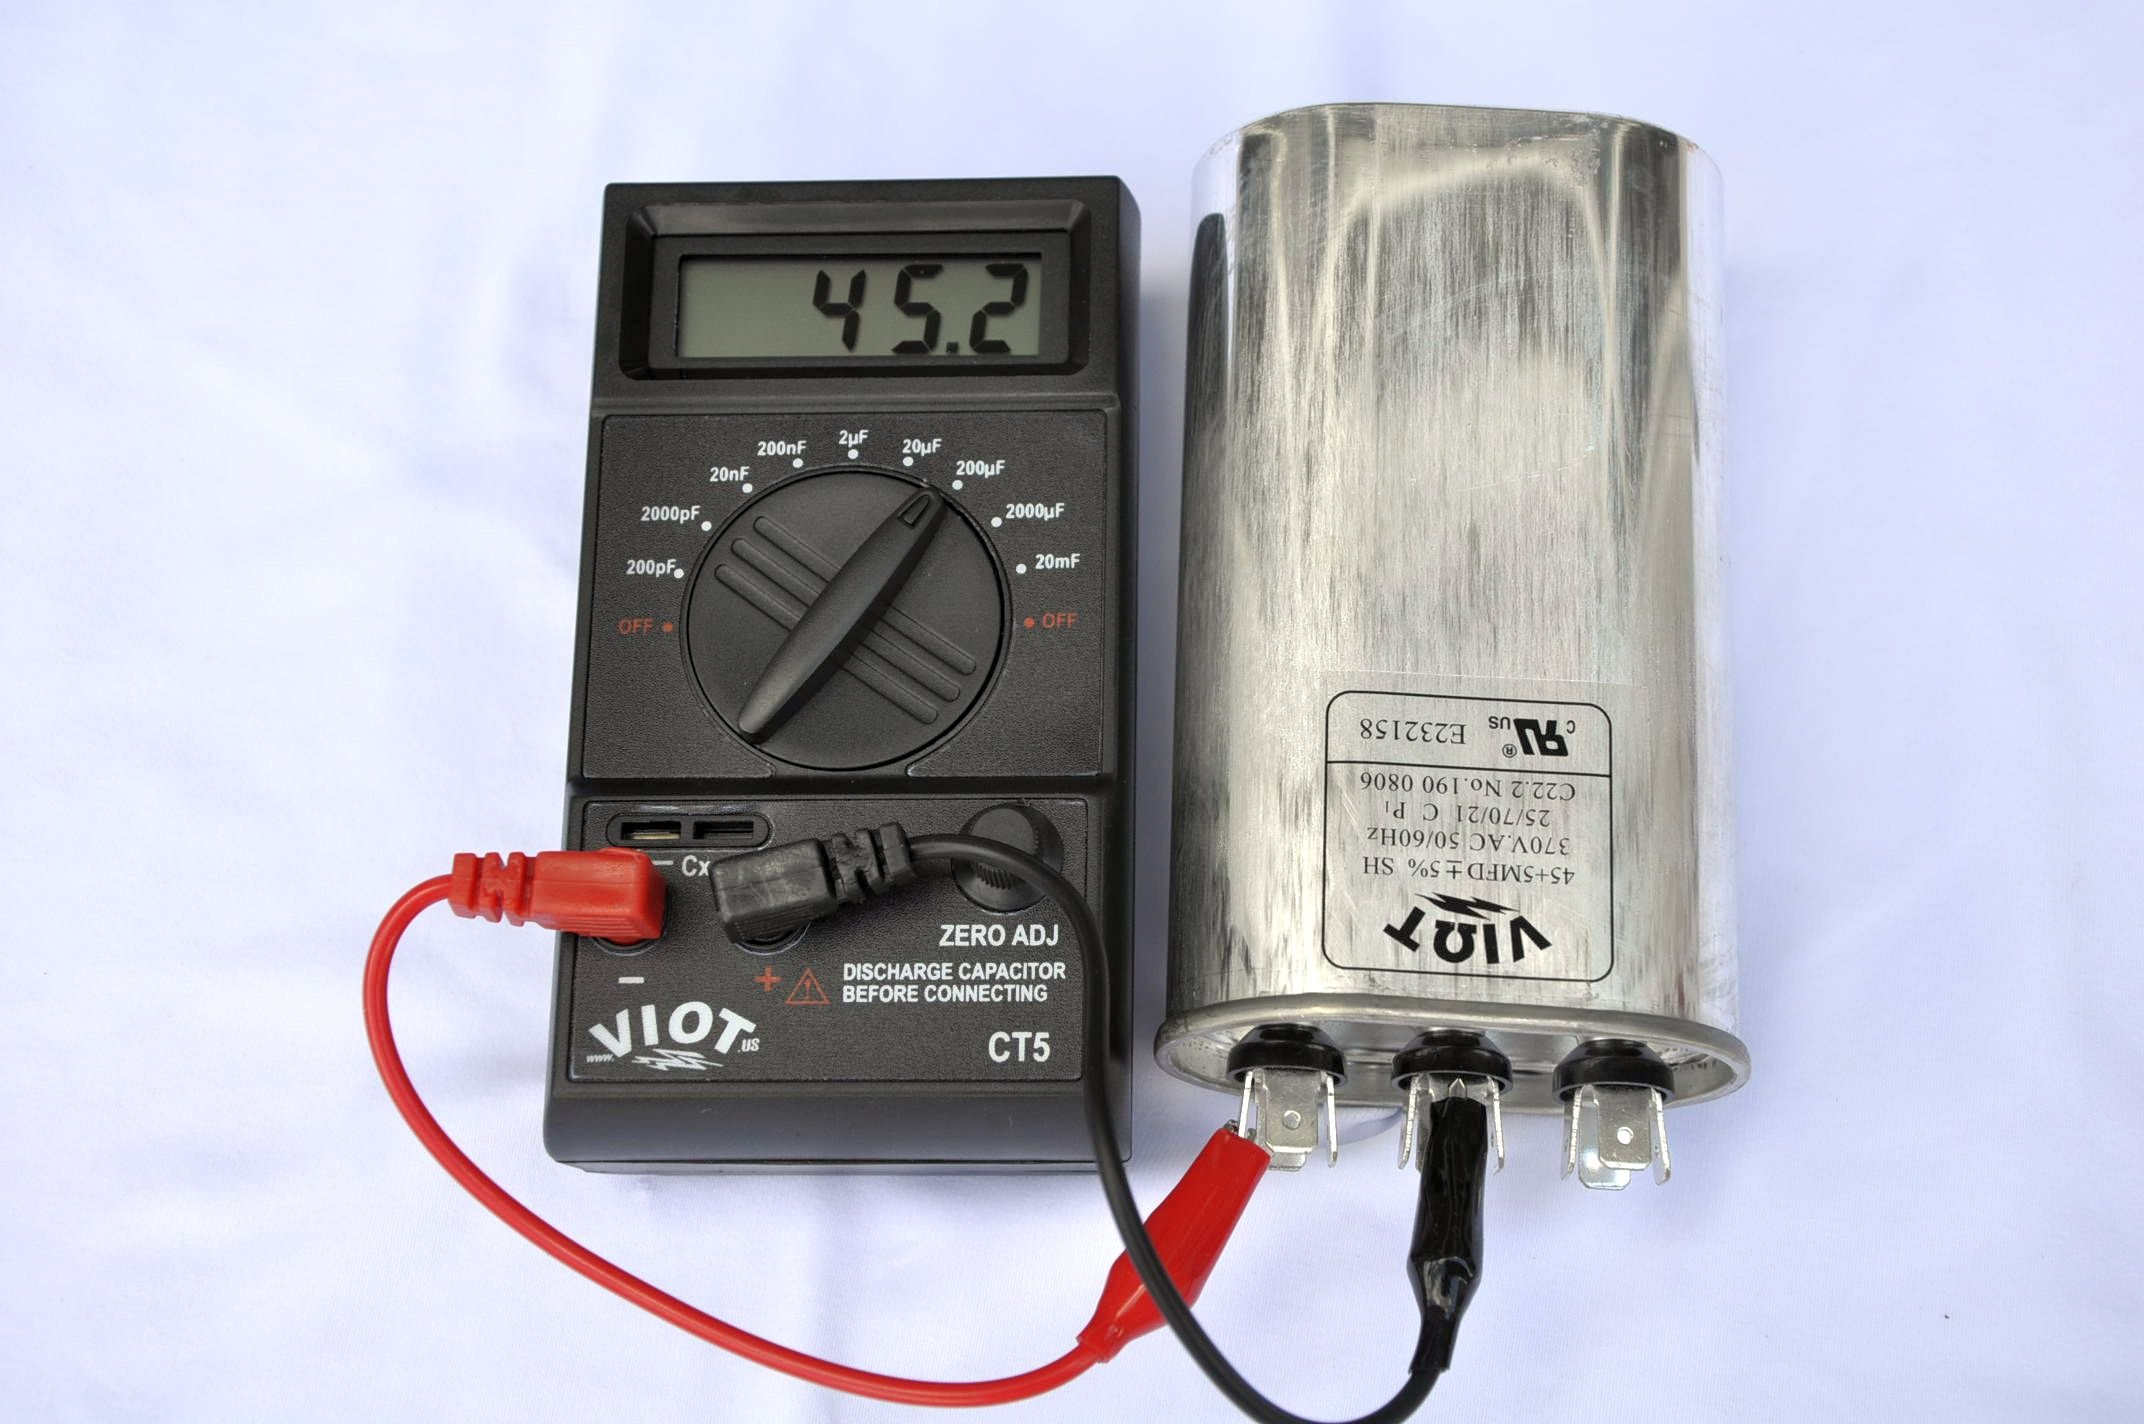 Portable Digital Capacitor Tester:Wide Range Large Capacity Model CT5 for testing capacitance:1 pFd to 20 mFd cover all those uF